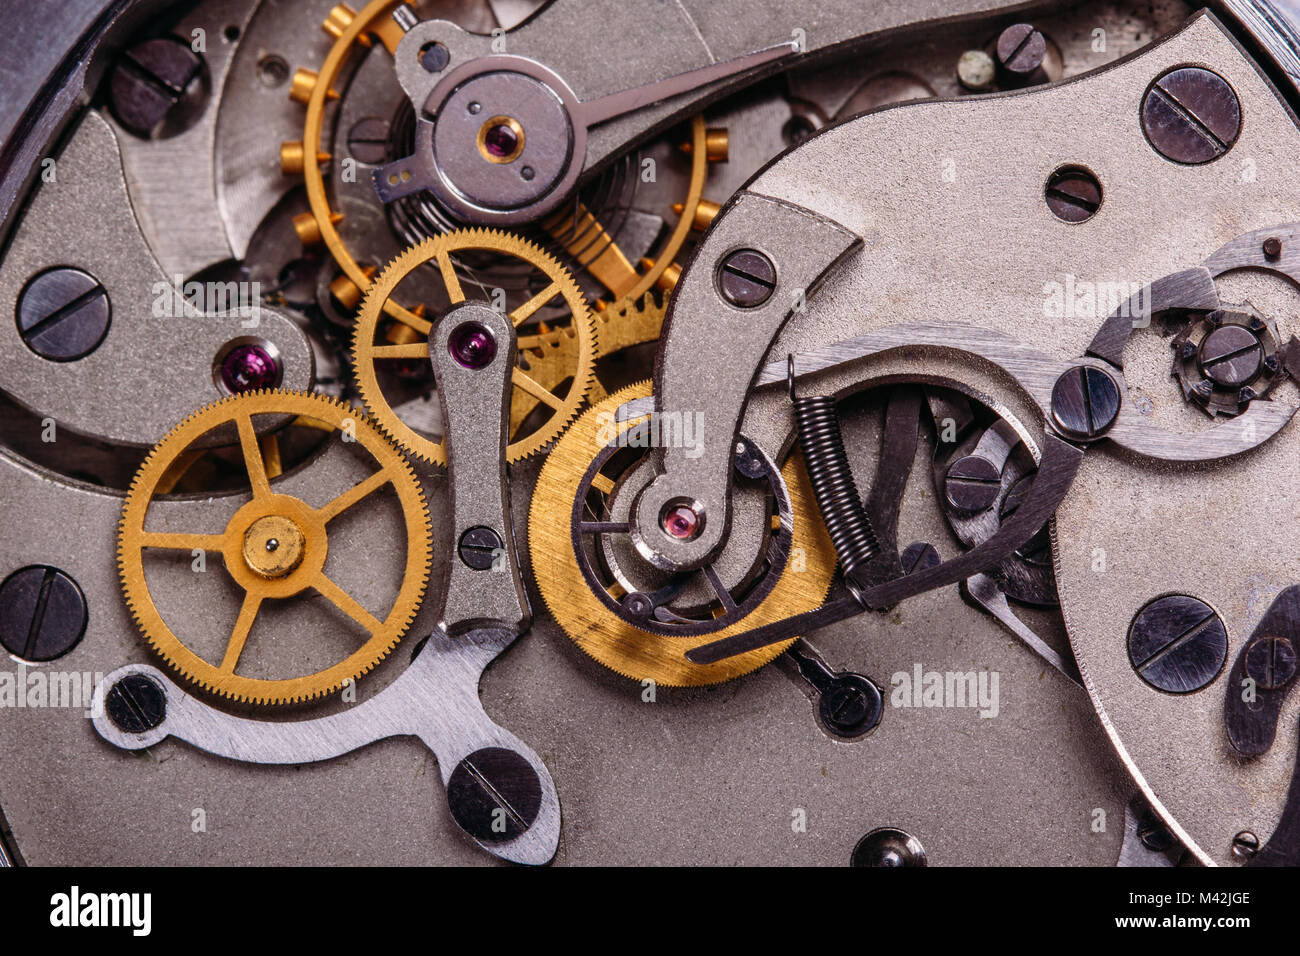 An open mechanism with gears of an old Soviet chronometer